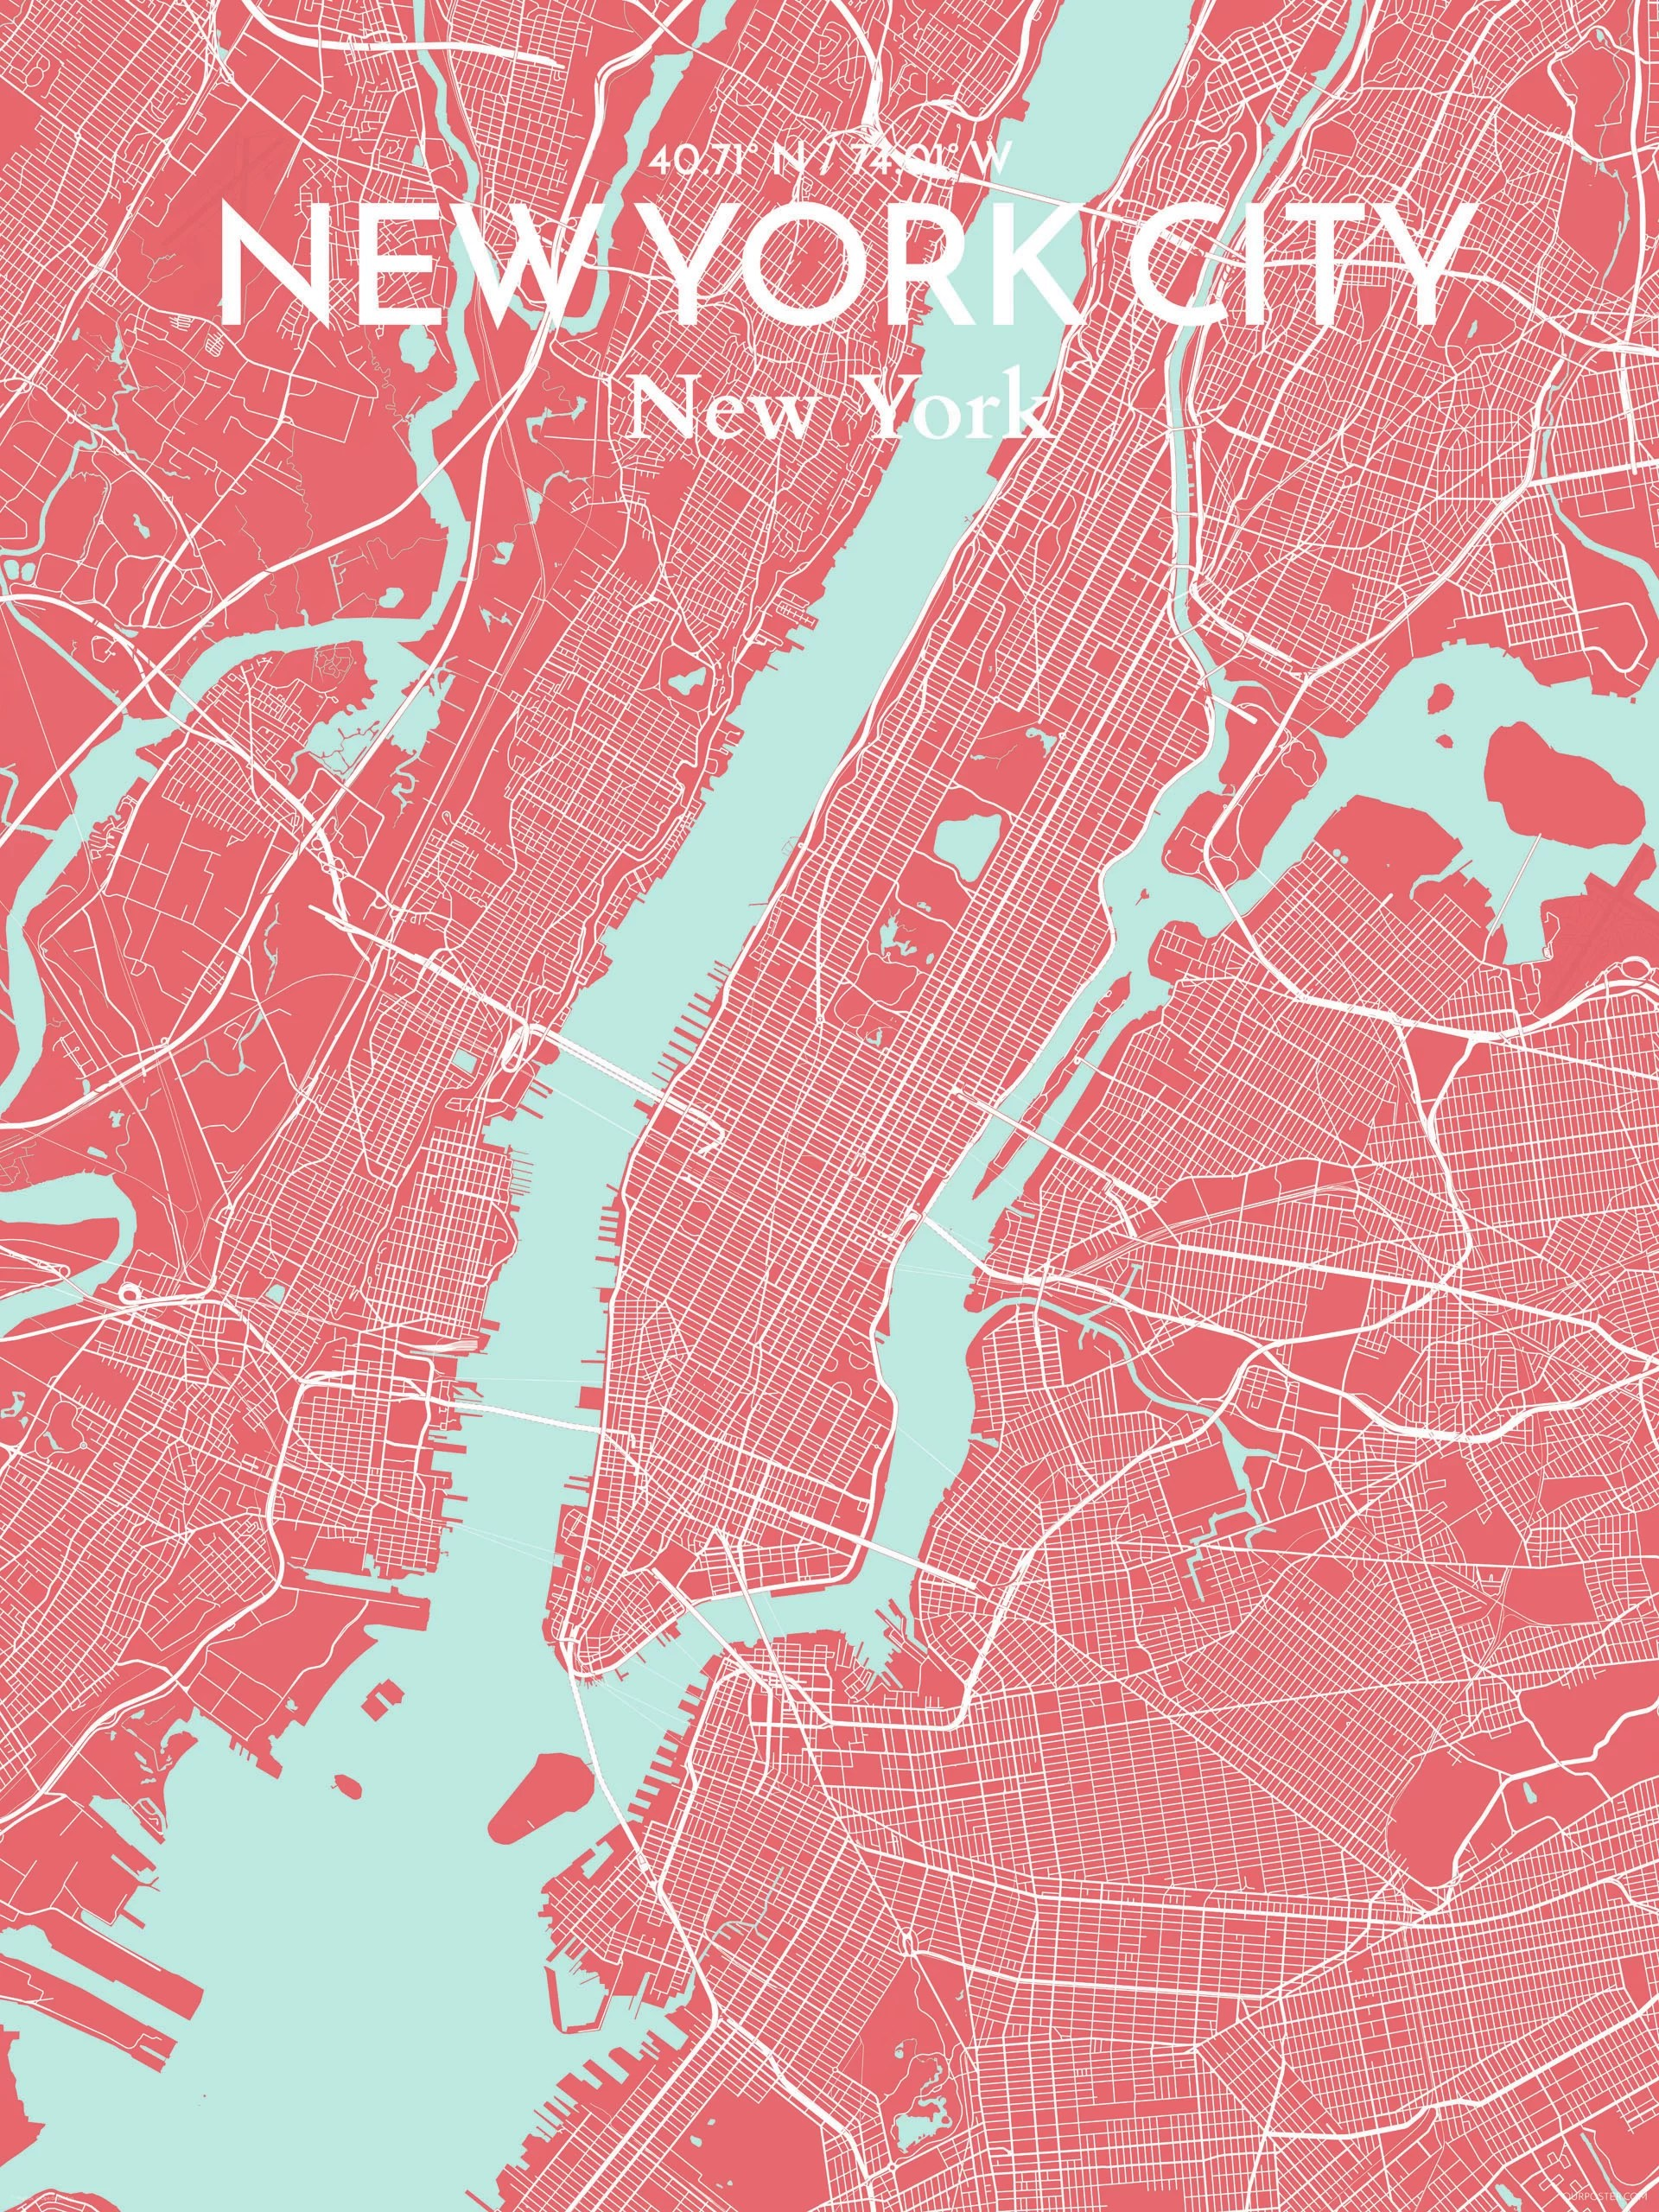 New York City Map Poster : poster, OurPoster.com, Graphic, Print, Poster, Maritime, Wayfair.ca